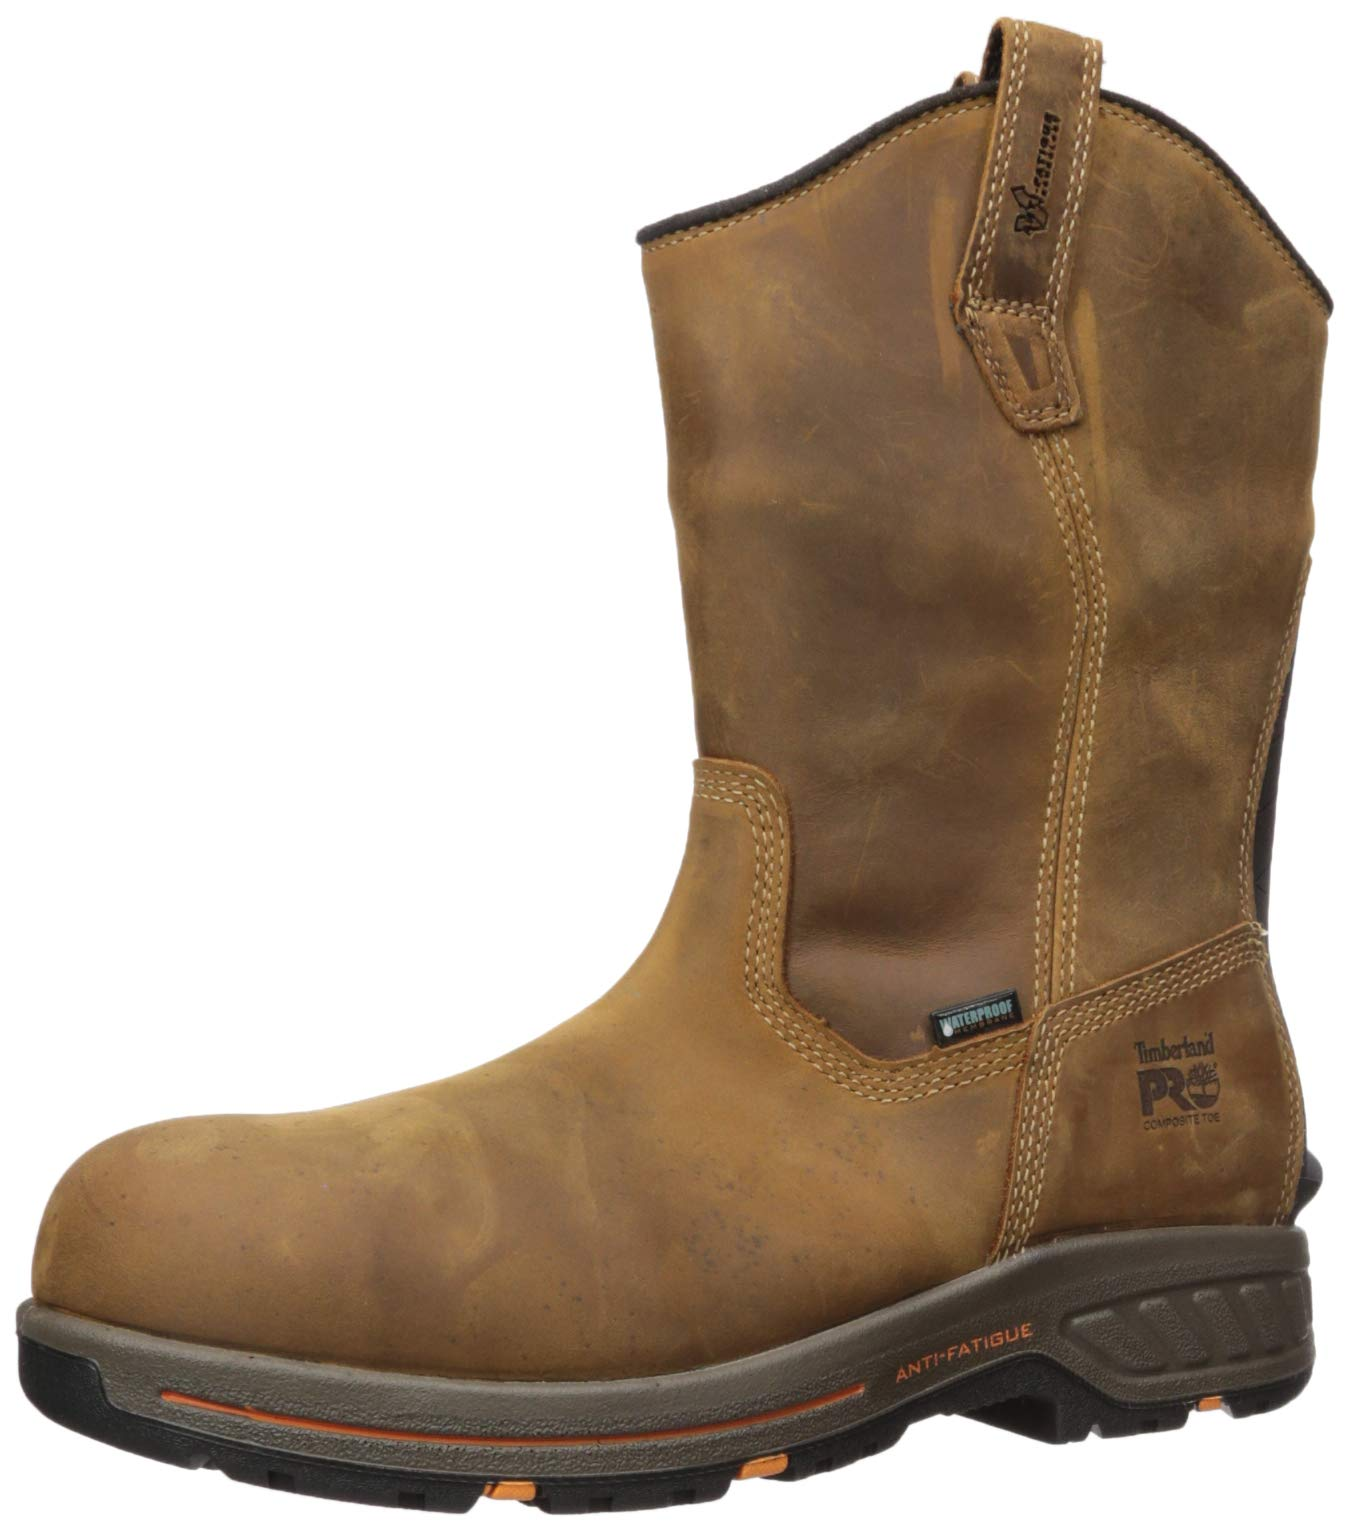 Timberland PRO Men's Helix HD Pull On Composite Toe Waterproof Industrial Boot, Brown Distressed, 10.5 M US by Timberland PRO